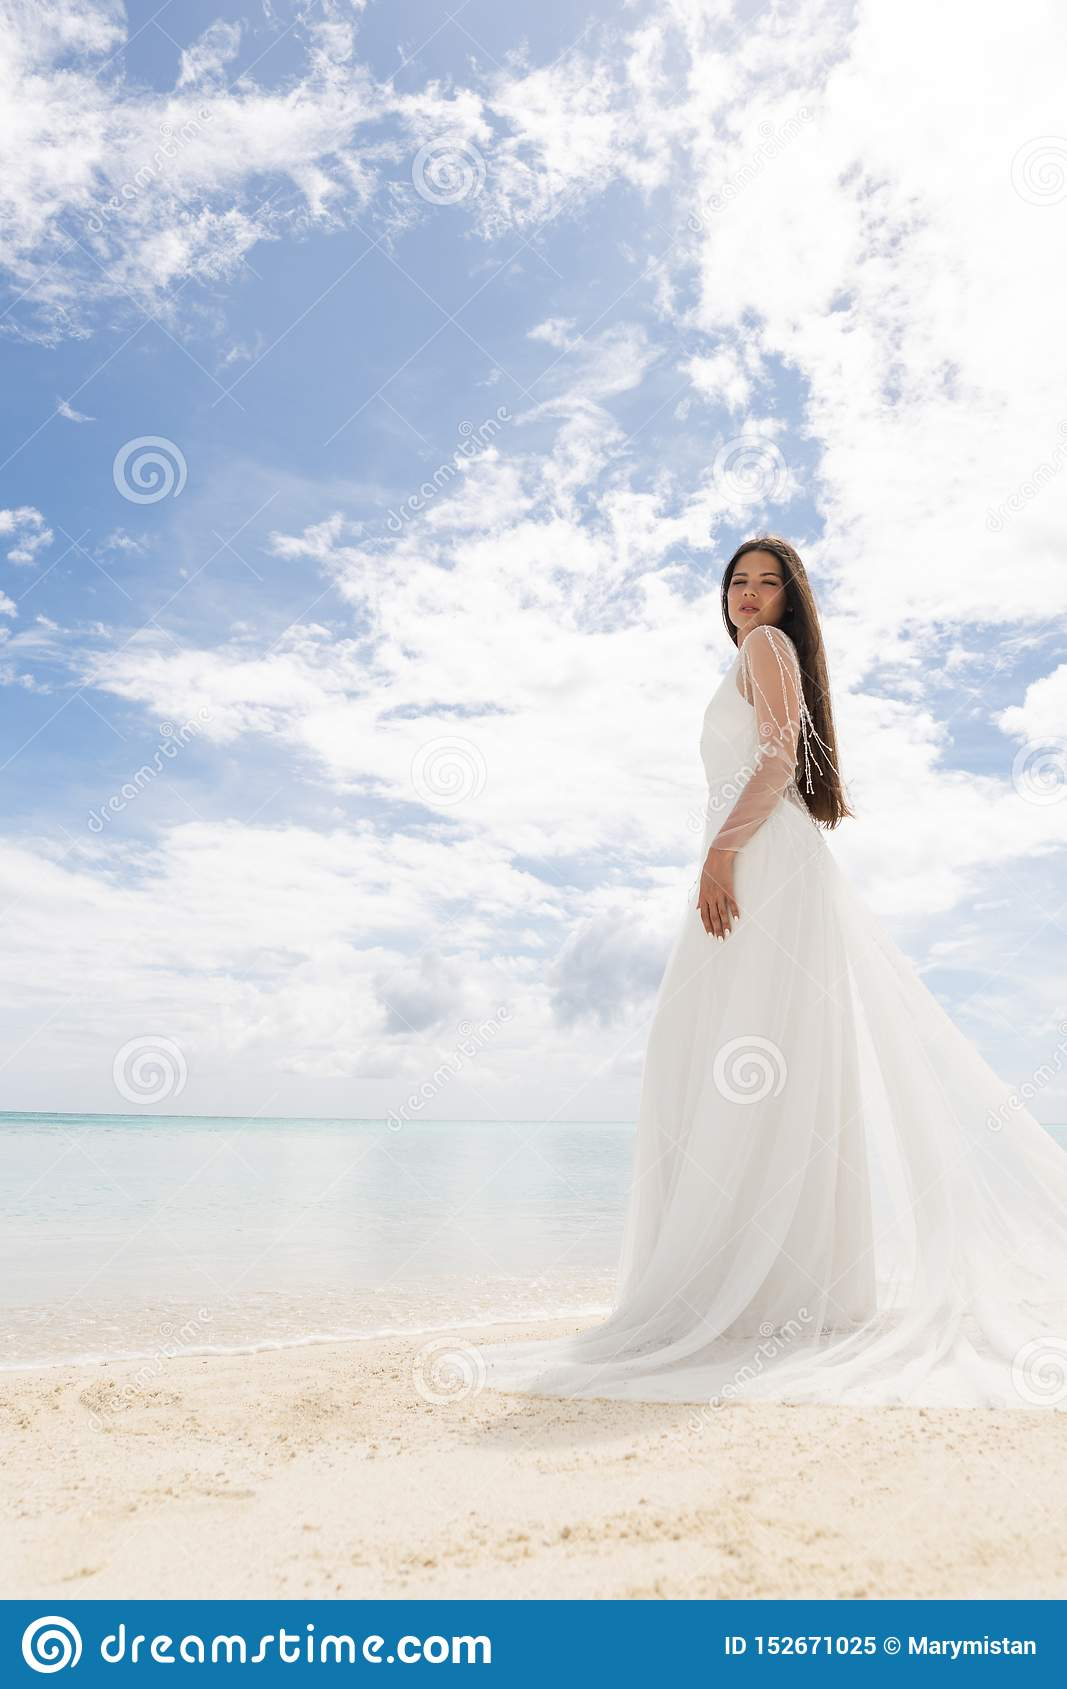 The perfect bride. A young bride in a white dress is standing on a snow-white beach